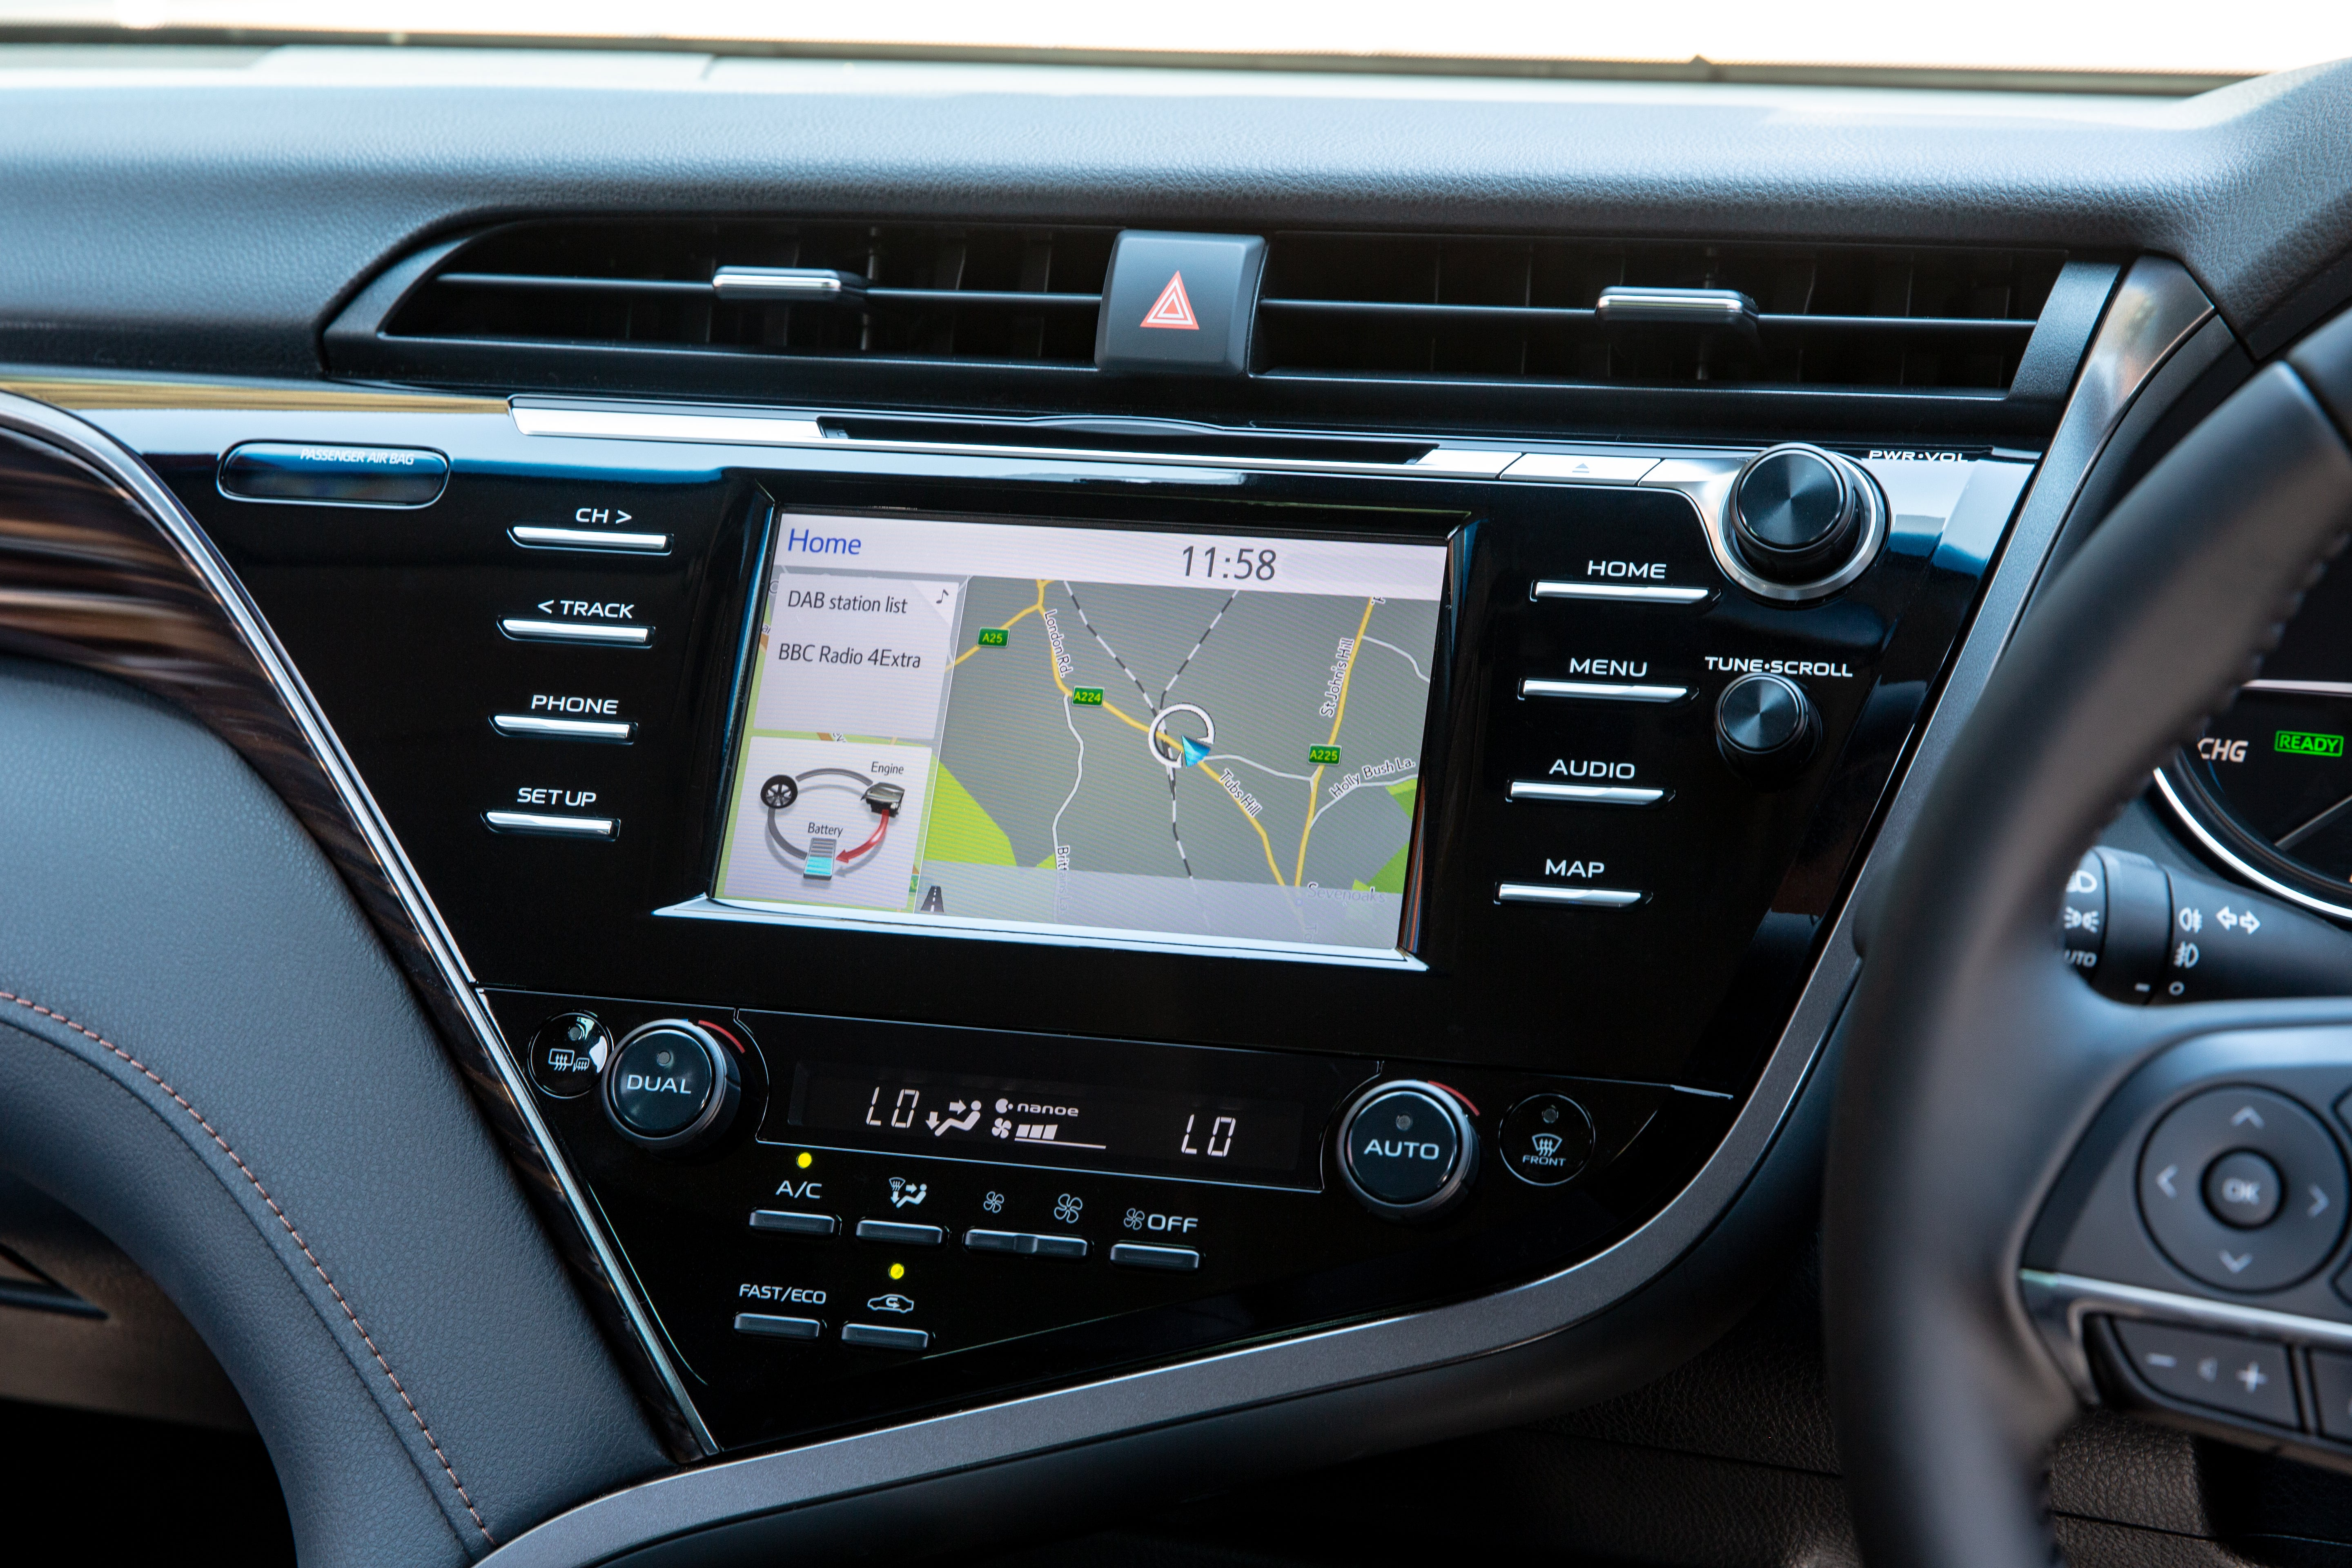 Toyota Camry Electric Infotainment